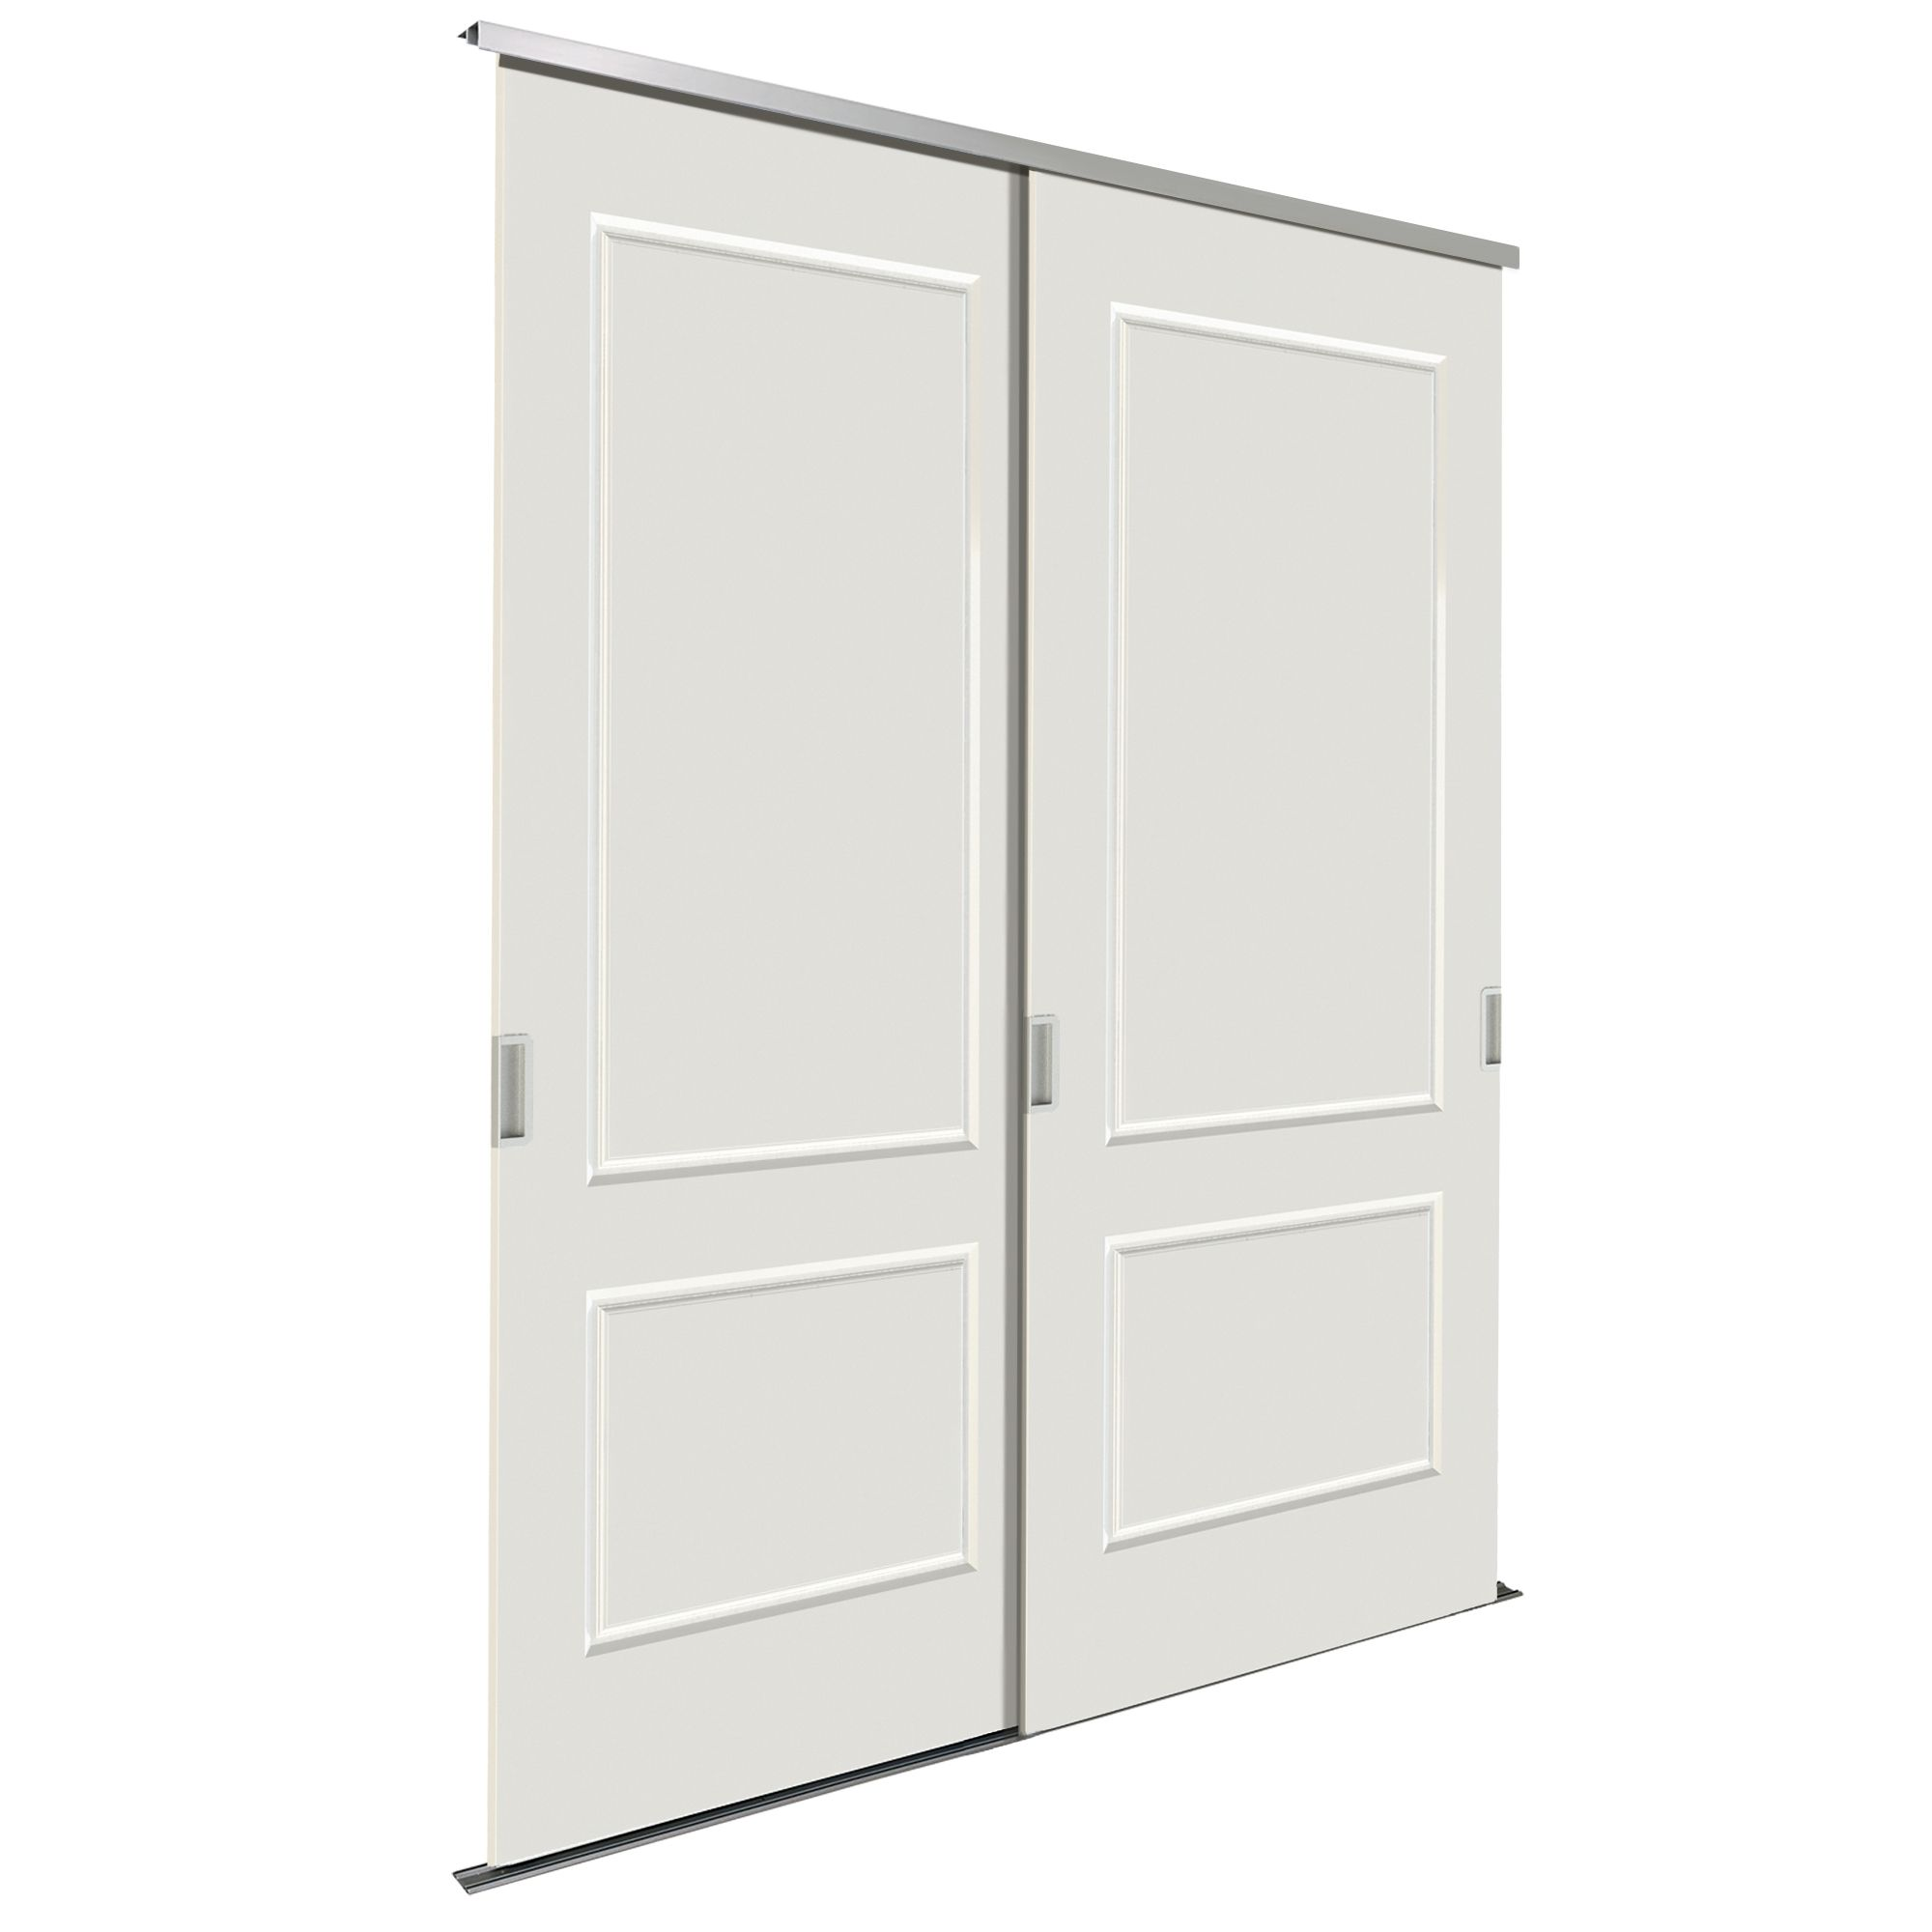 paintable white sliding wardrobe door kit h 2200 mm w. Black Bedroom Furniture Sets. Home Design Ideas